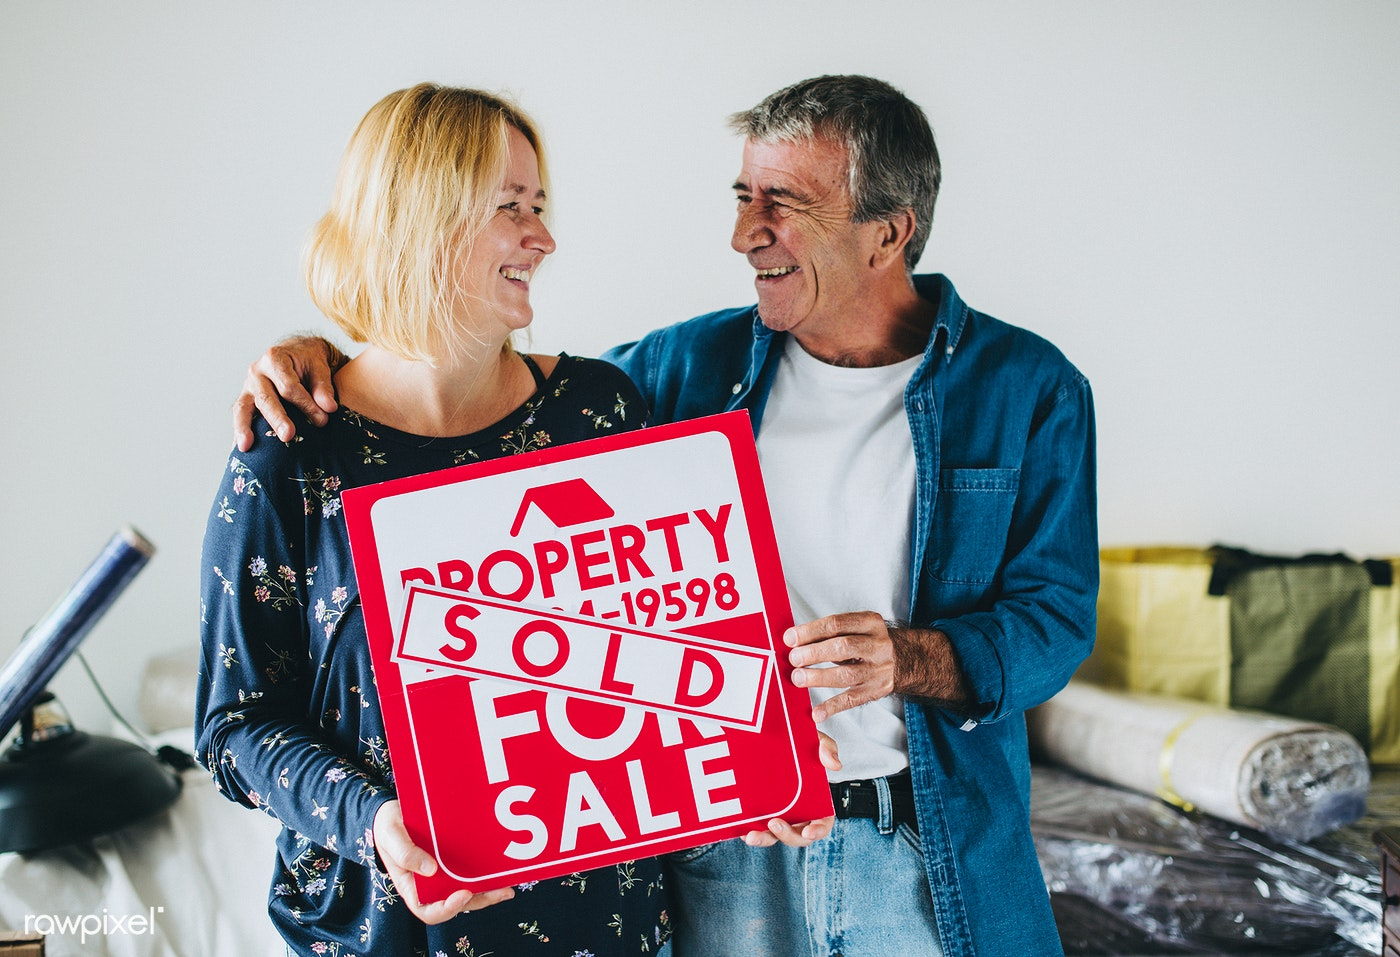 Couple with a property for sale sign